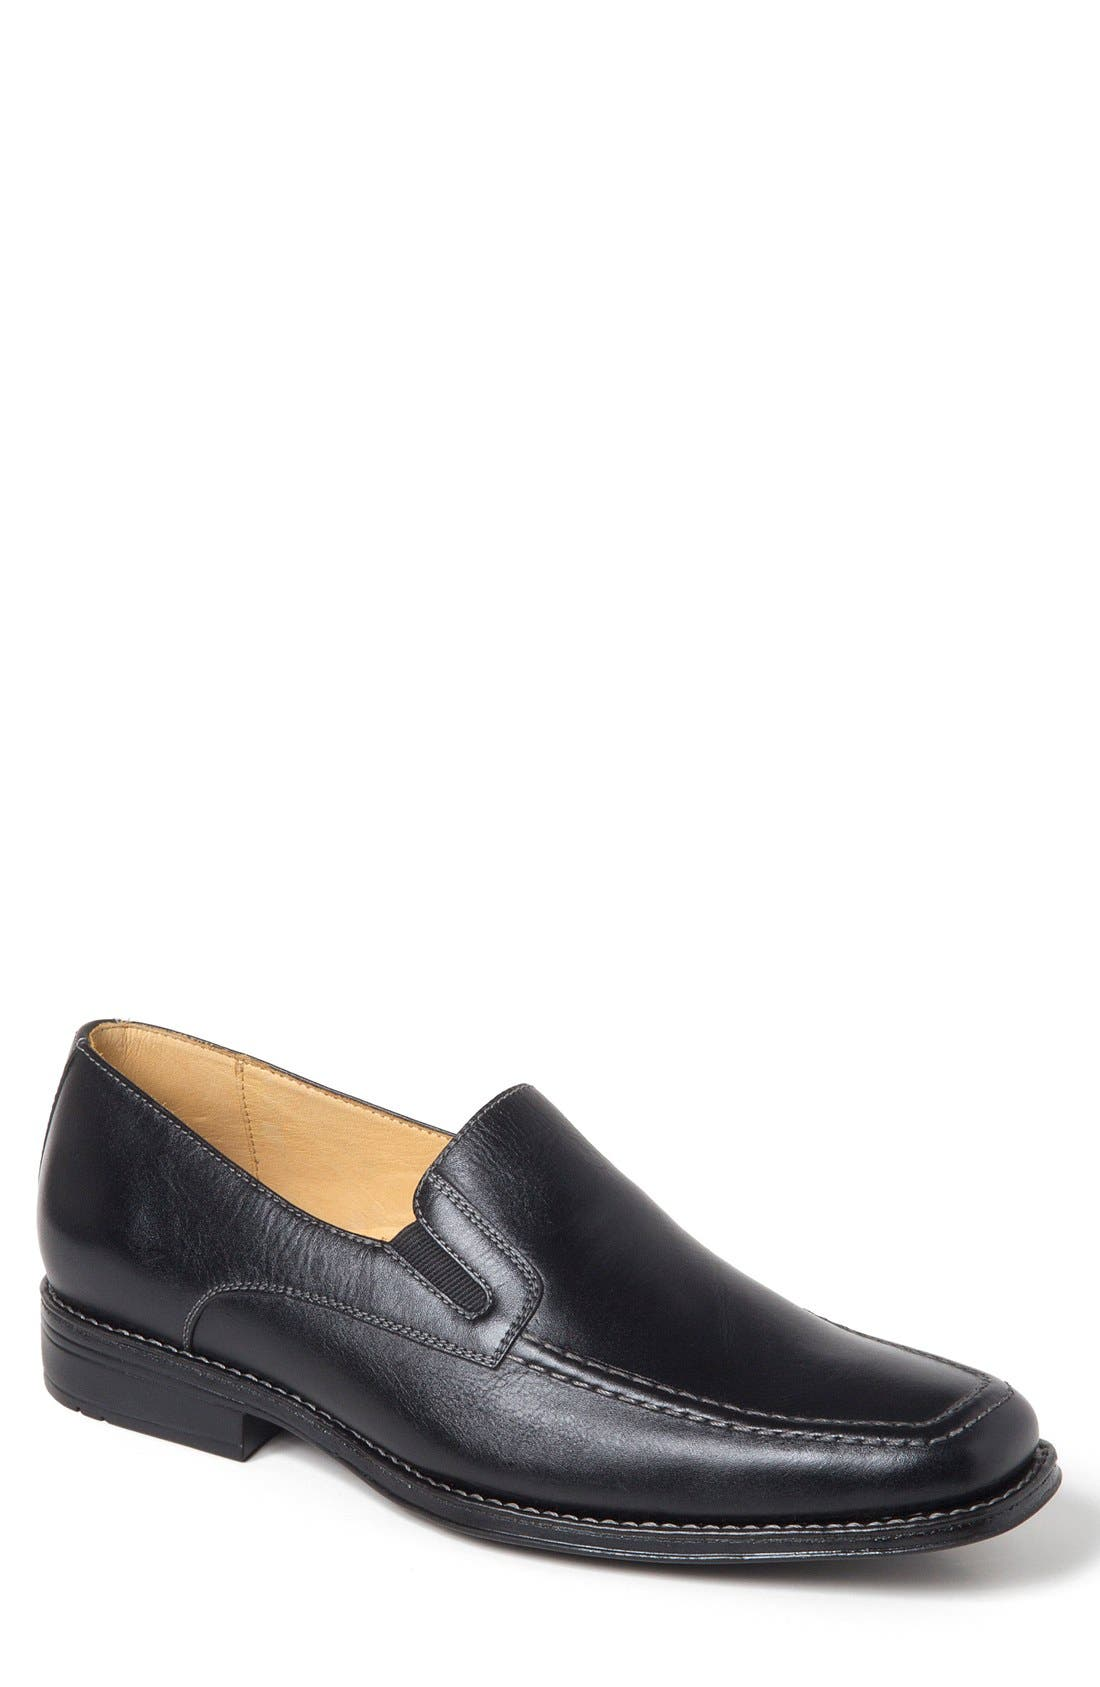 Marc Venetian Loafer,                             Main thumbnail 1, color,                             001